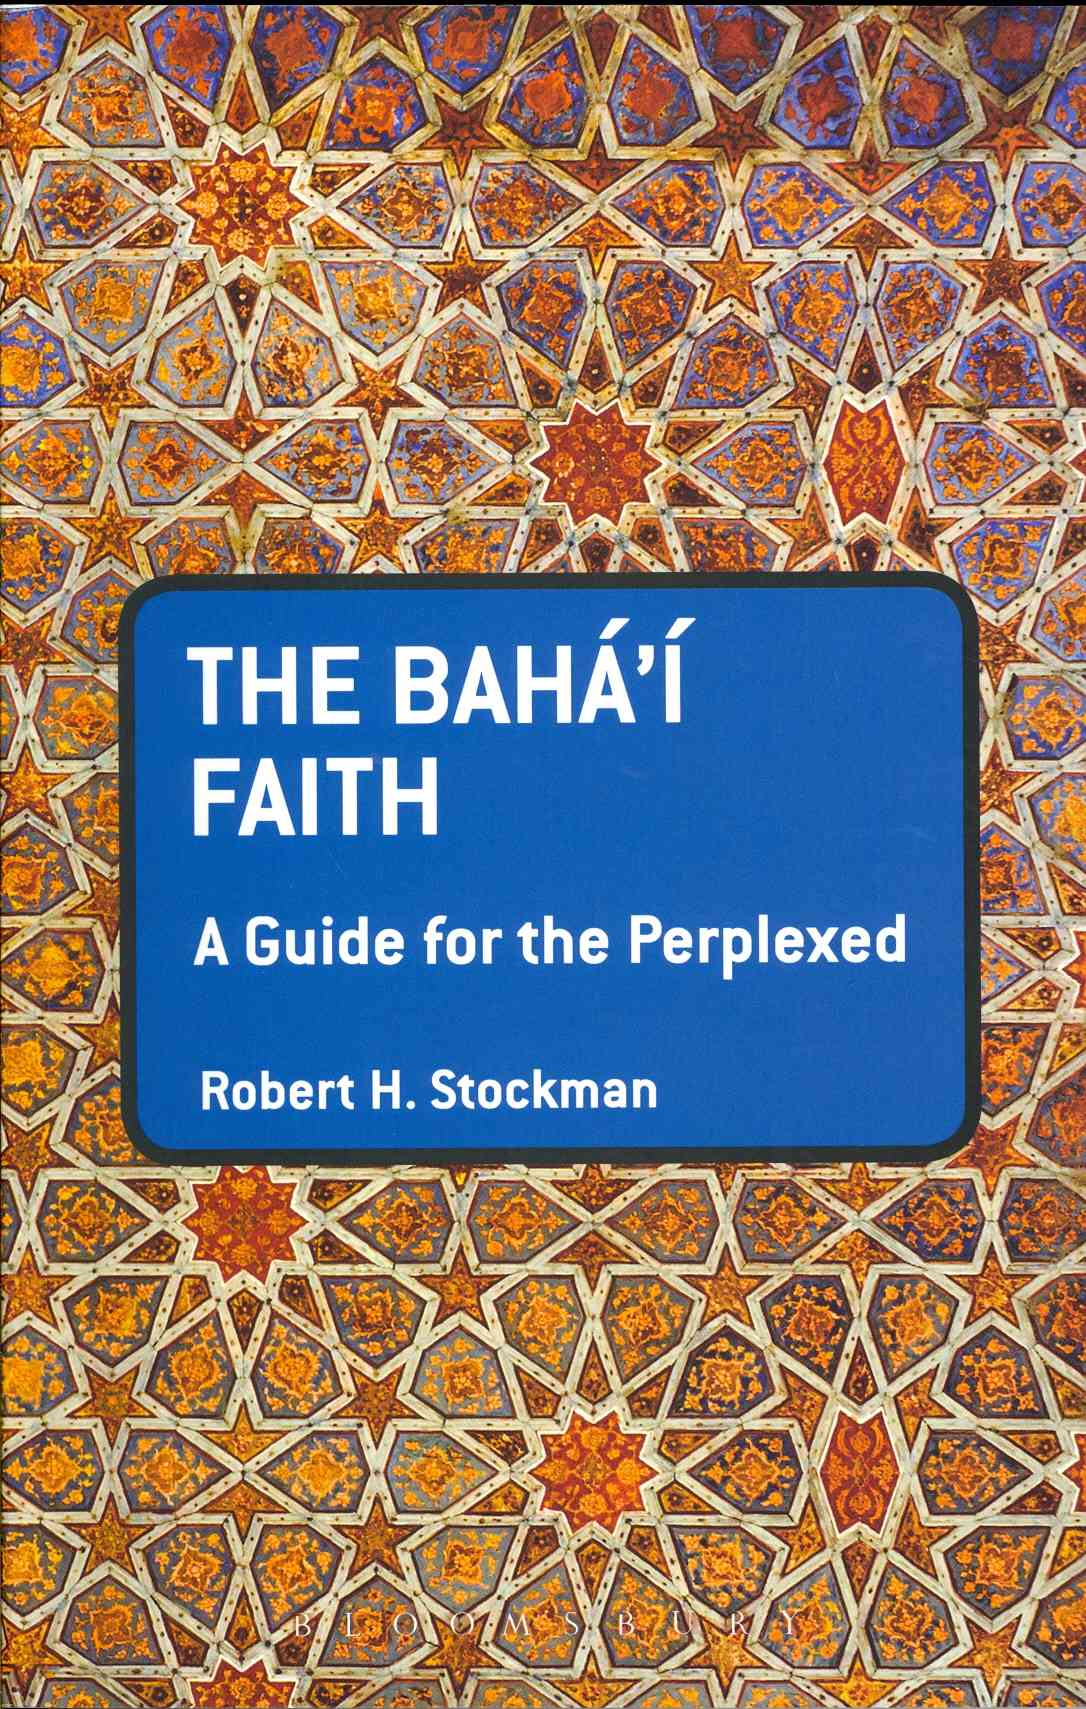 The Baha'i Faith: A Guide for the Perplexed (Paperback)